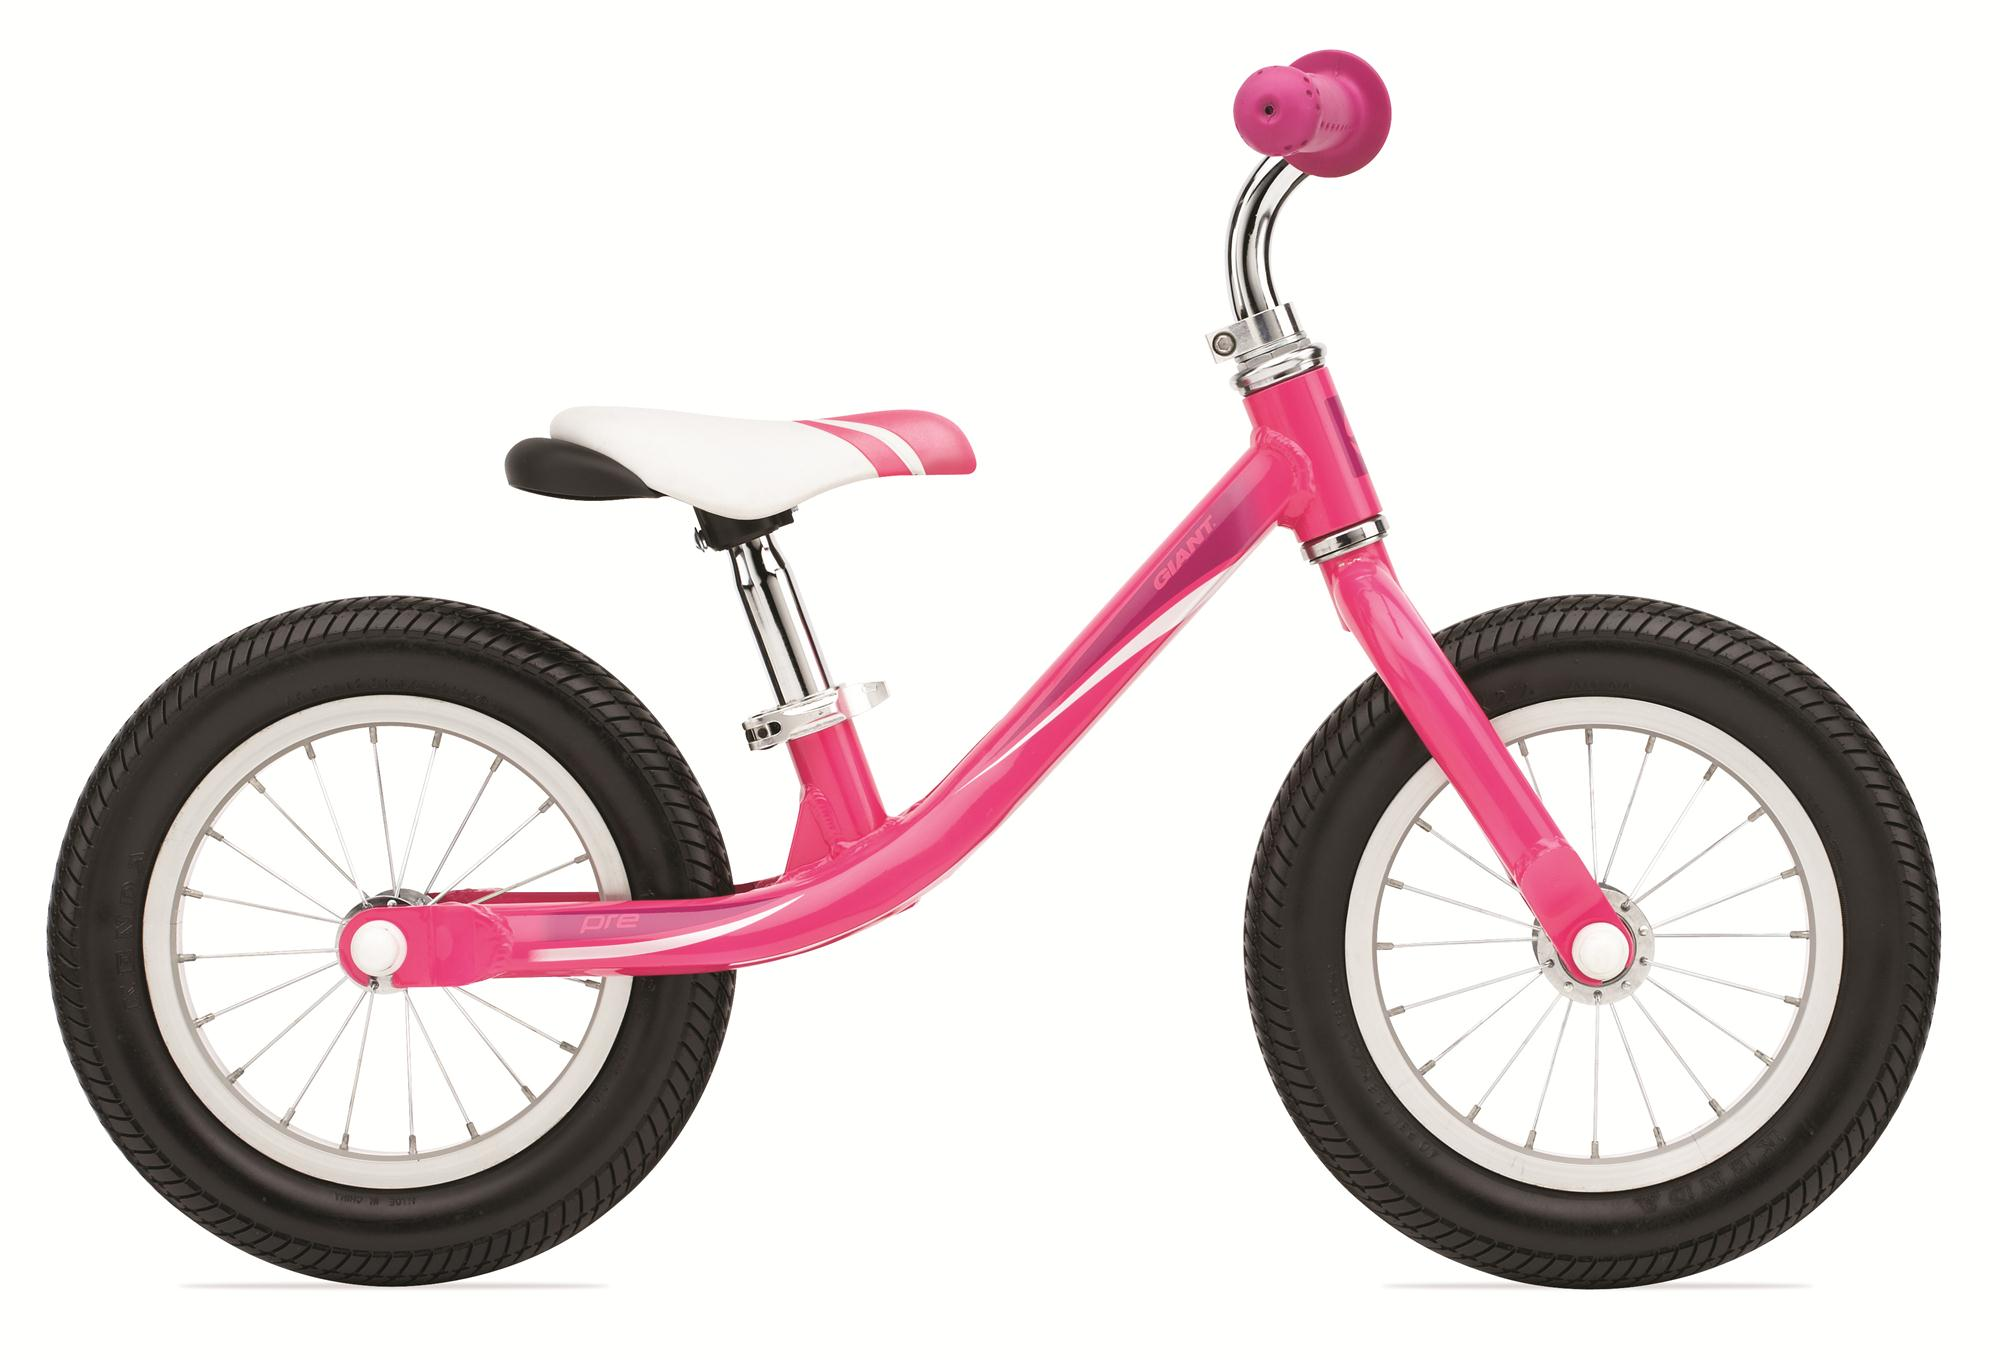 http://www.giant-bicycles.com/_generated/_generated_us/bikes/models/images/2000/2012/Pre_girls_pink.jpg